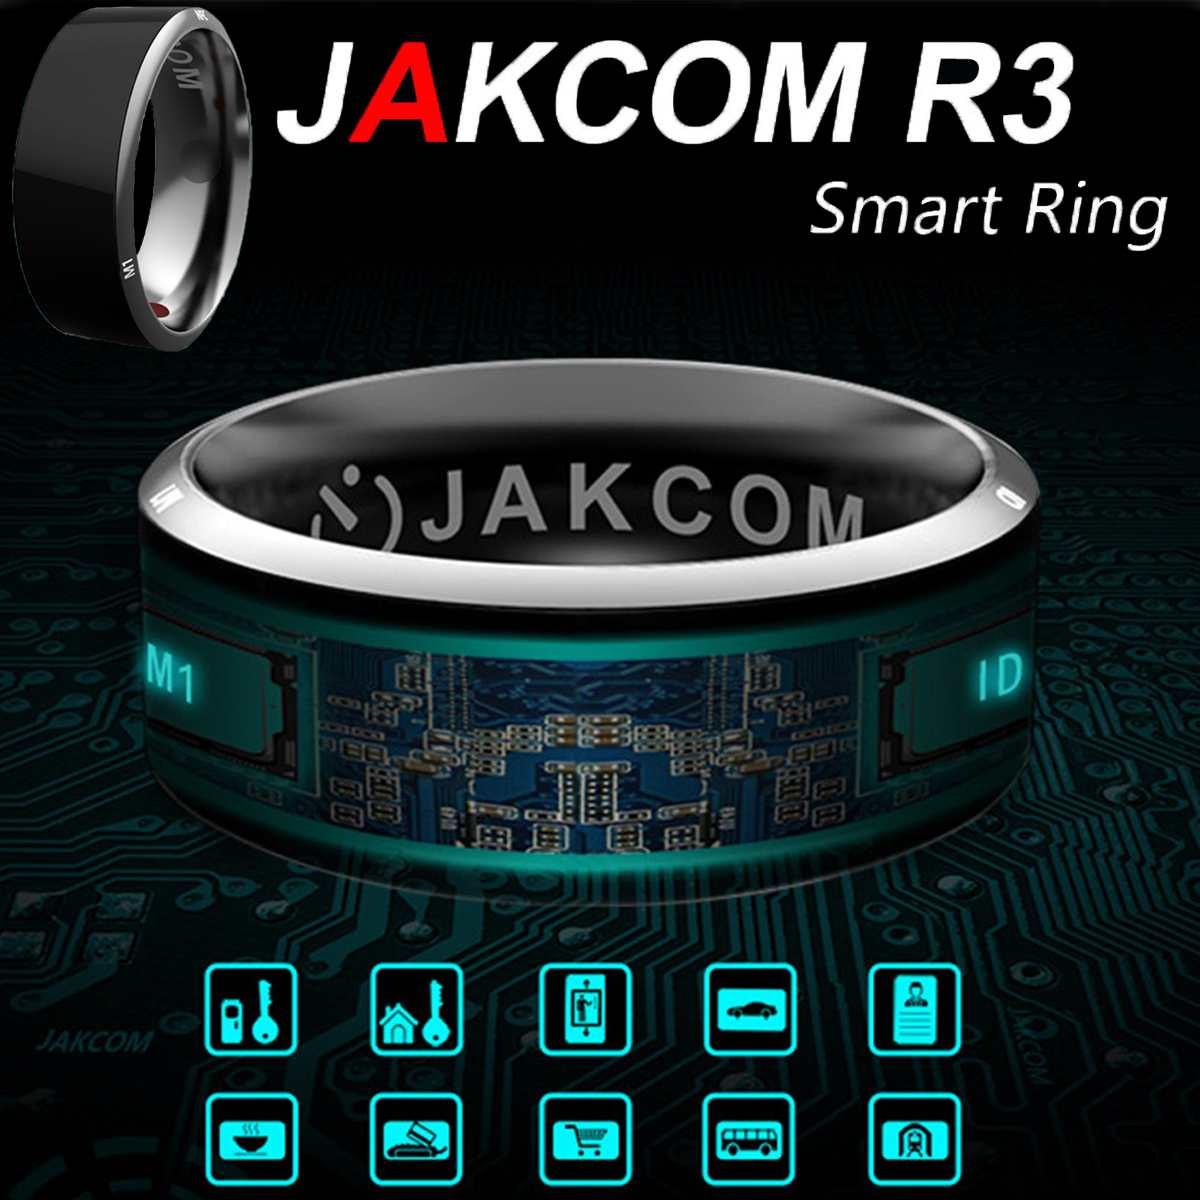 R3 NFC Smart Ring Magic Finger Wear Wearable Smart Ring For iPhone Android IOS Windows Mobile Phone image